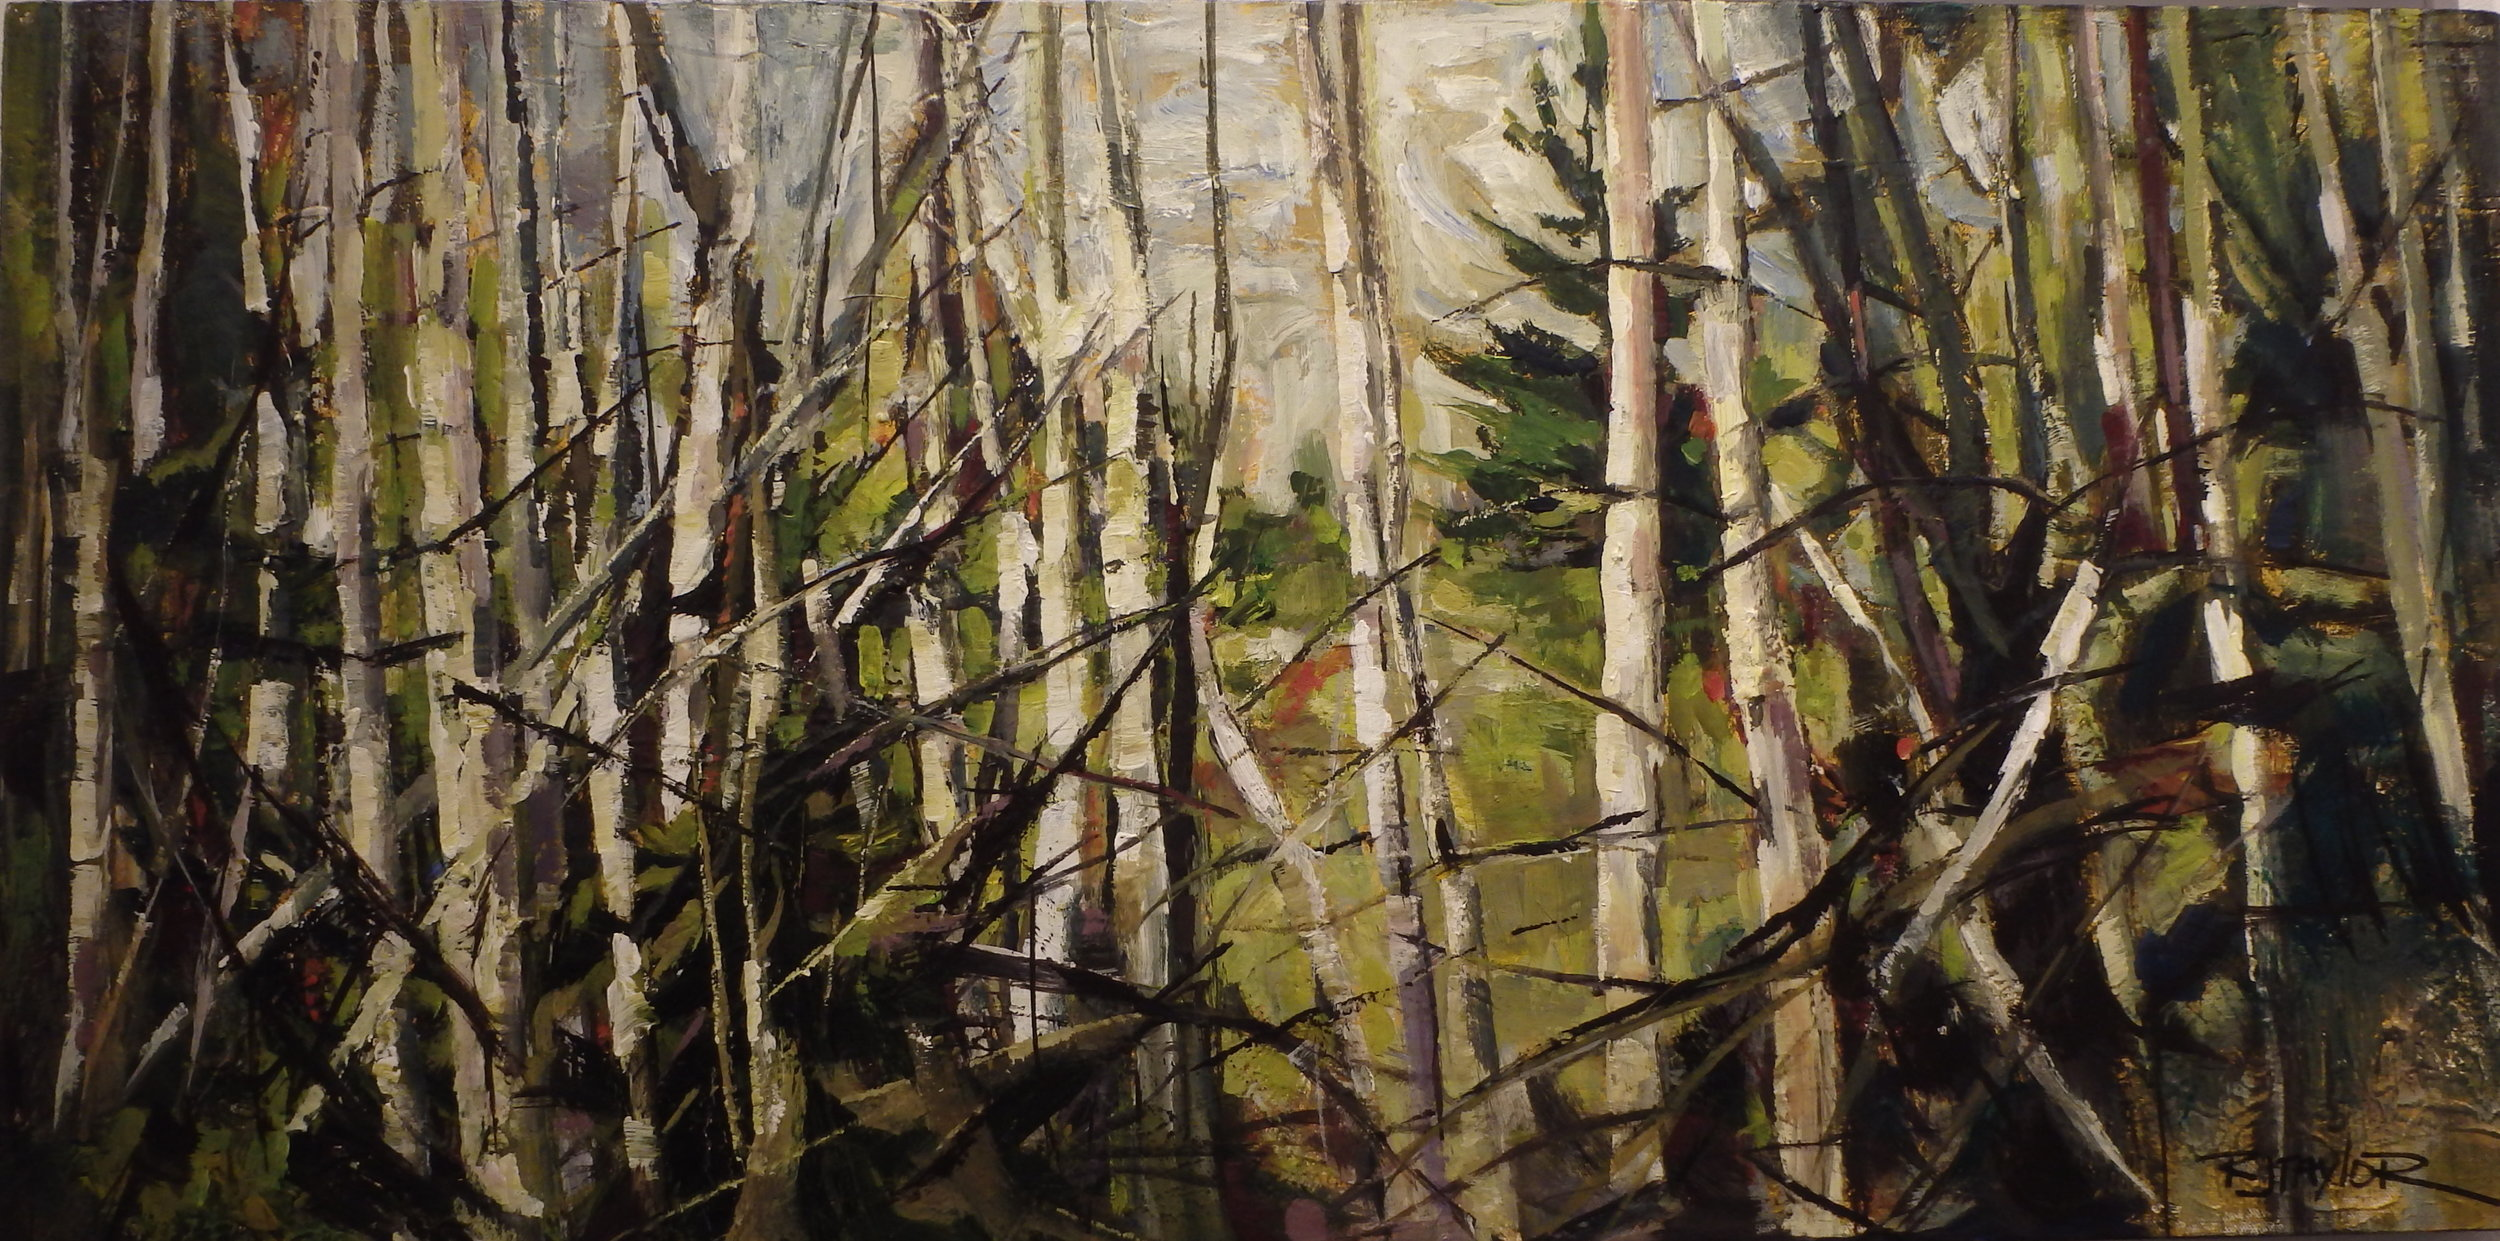 """Birches"" 18x36 acrylic on canvas   SOLD"